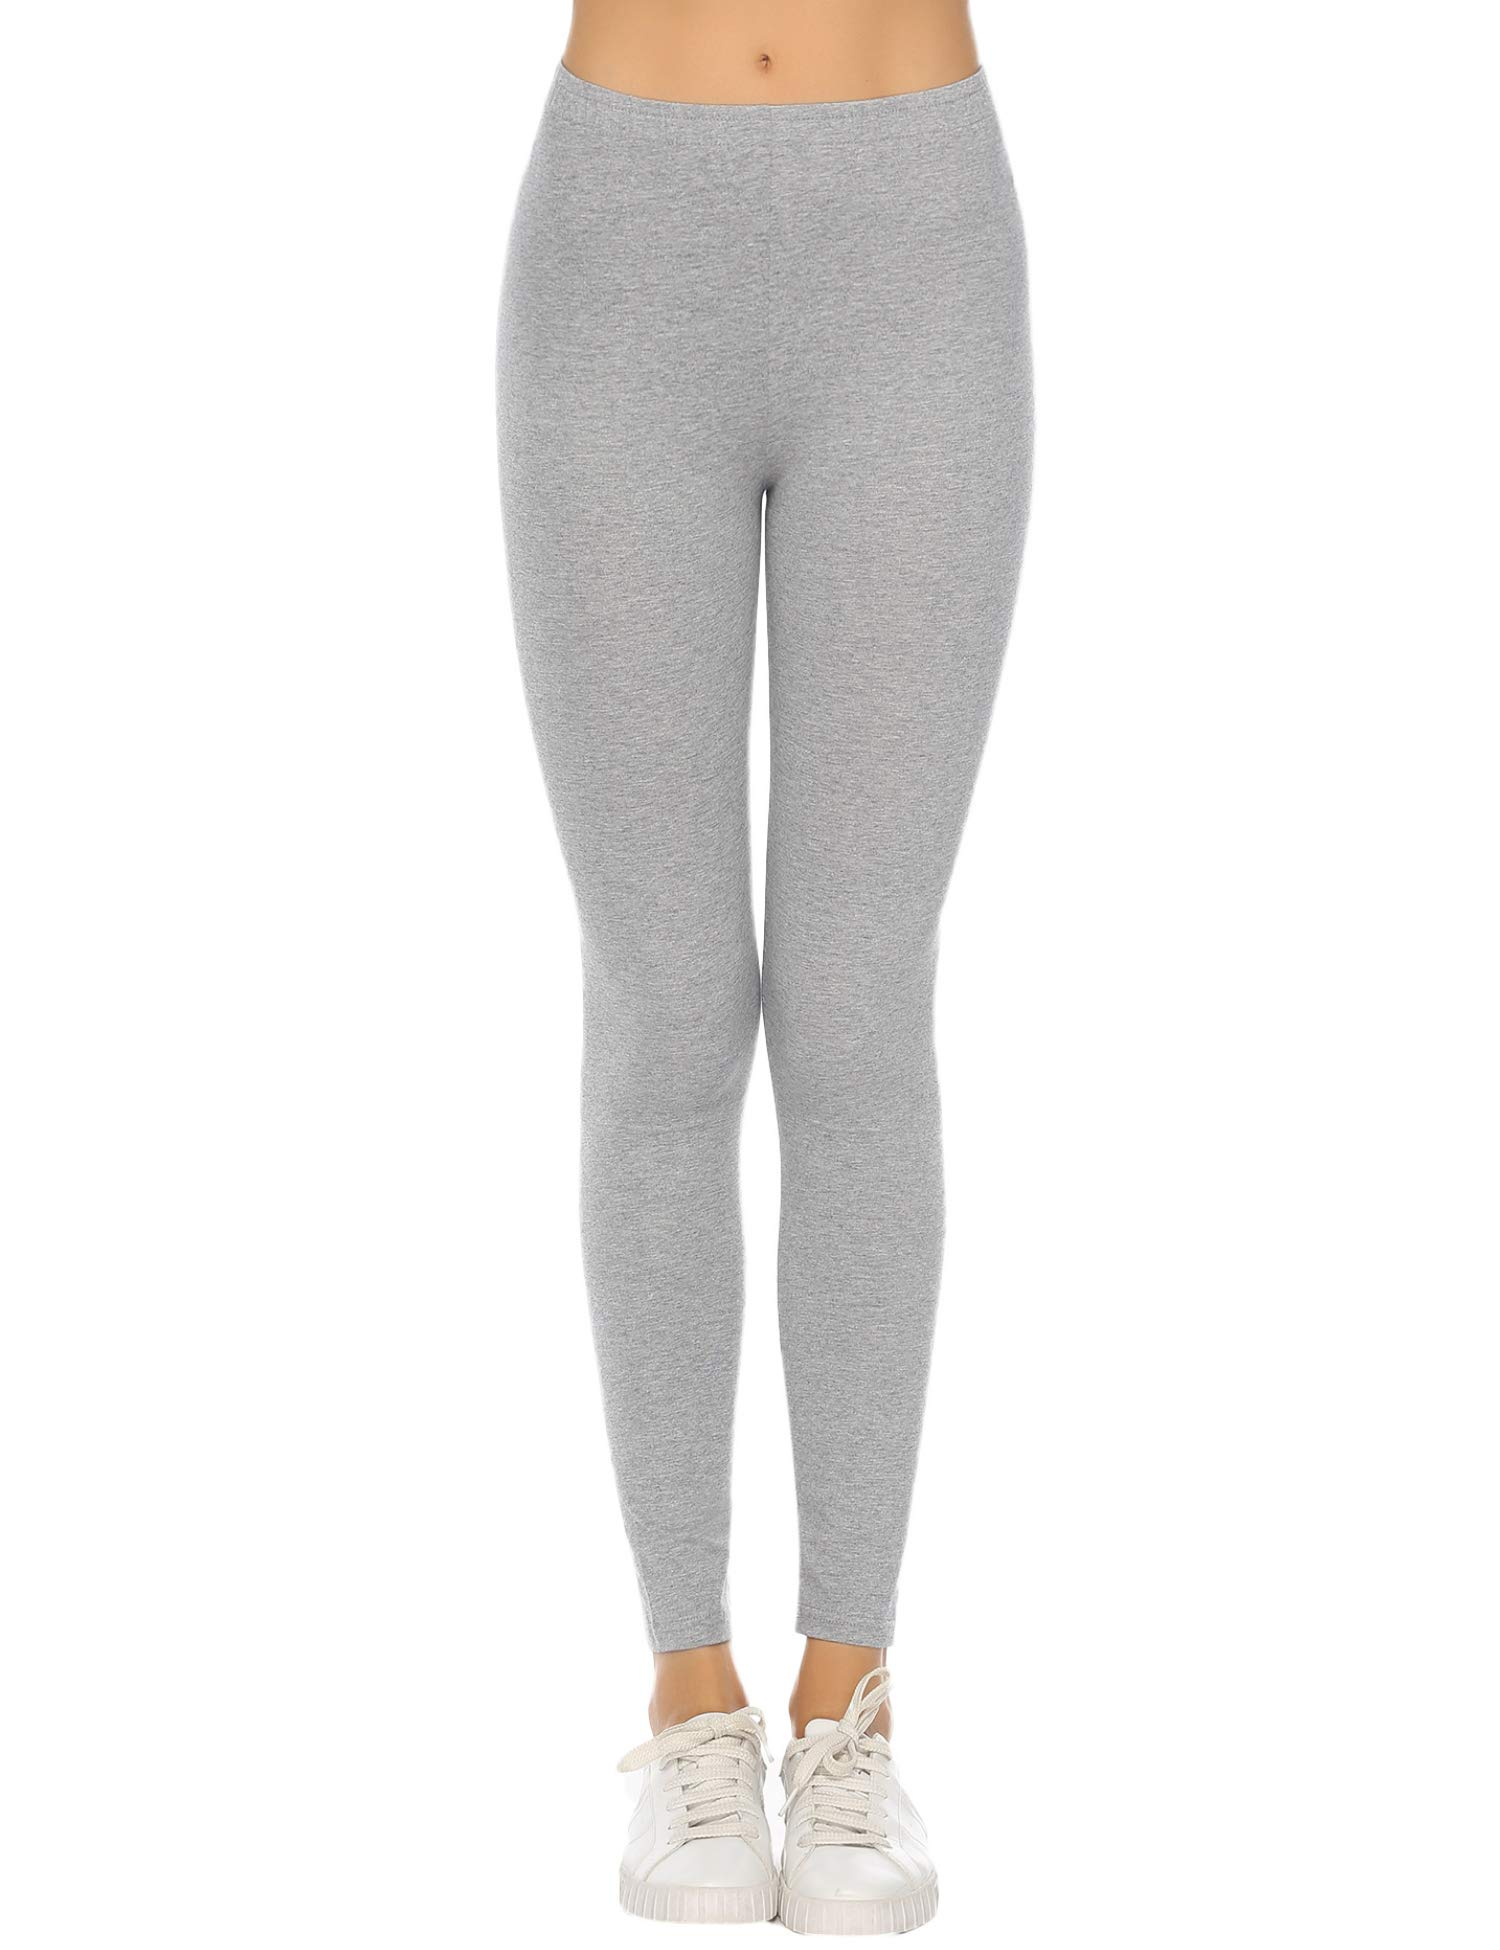 Hawiton High Waisted Leggings Solid Yoga Workout Running Full Length Pants Soft & Slim